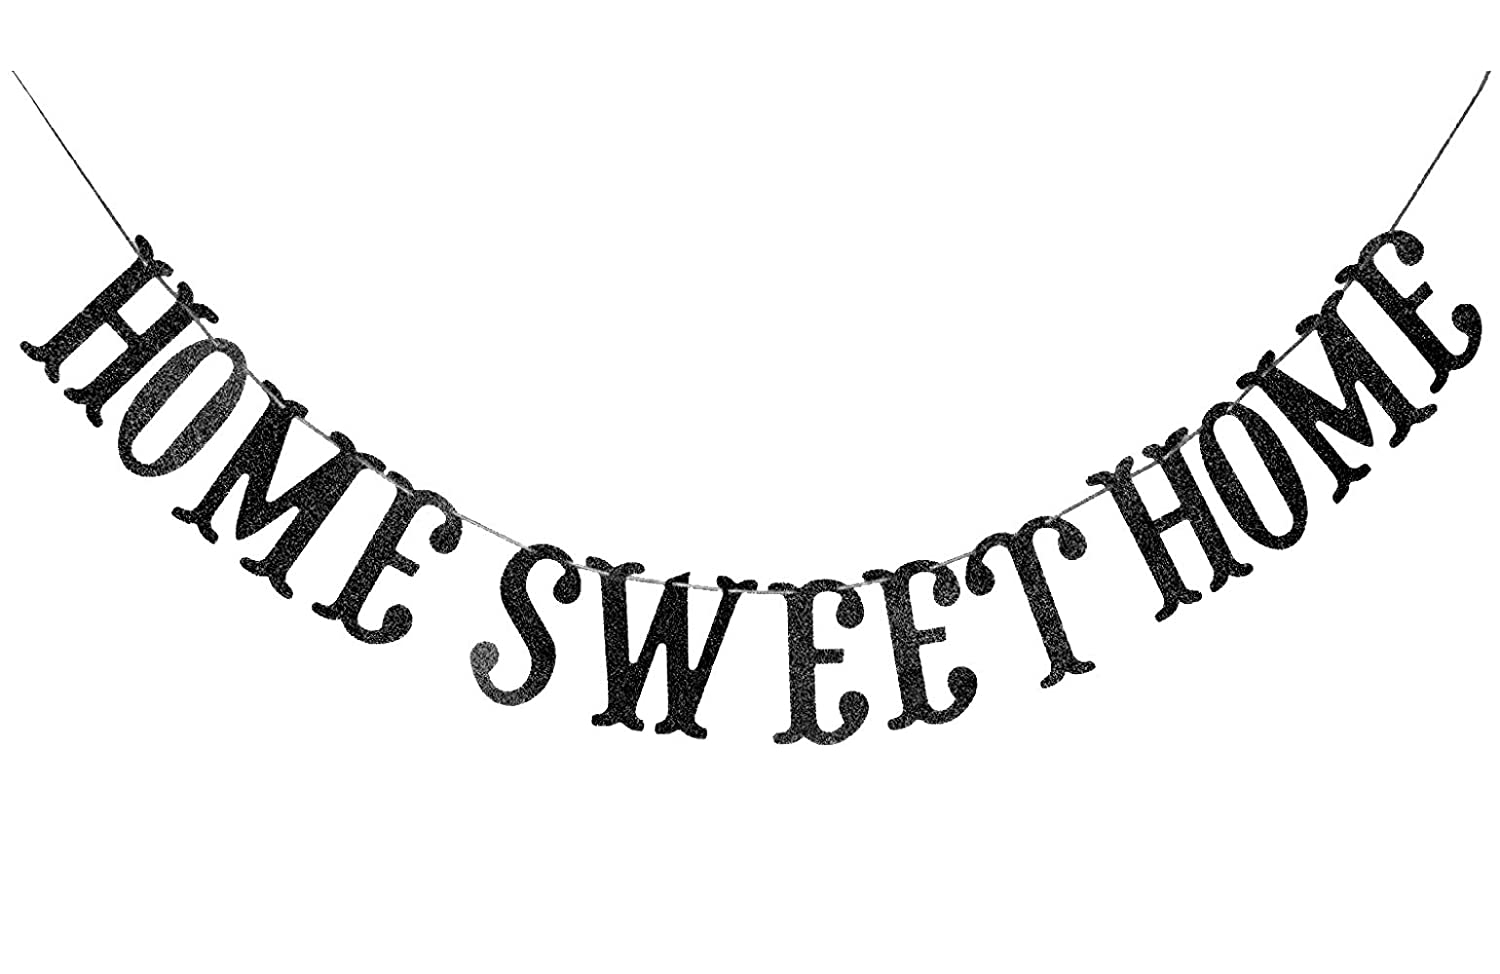 Home Sweet Home Banner for Housewarming Patriotic Military Decoration Family Party Supplies Cursive Bunting Photo Booth Props Sign (Black Glitter)